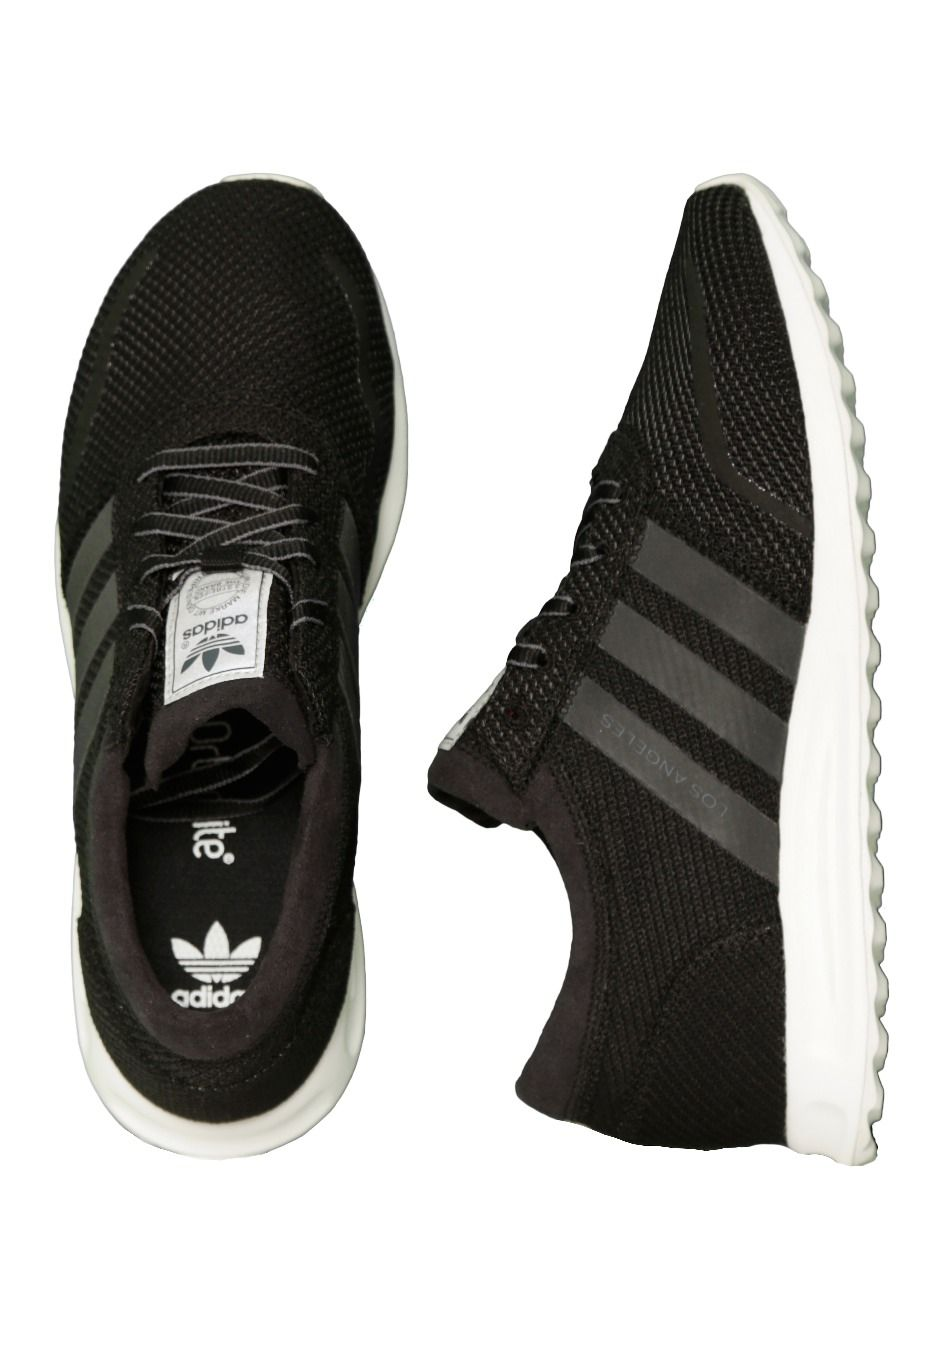 free shipping 94564 a7f48 We love adidas at  Sportdecals! Get custom Adidas gear today!